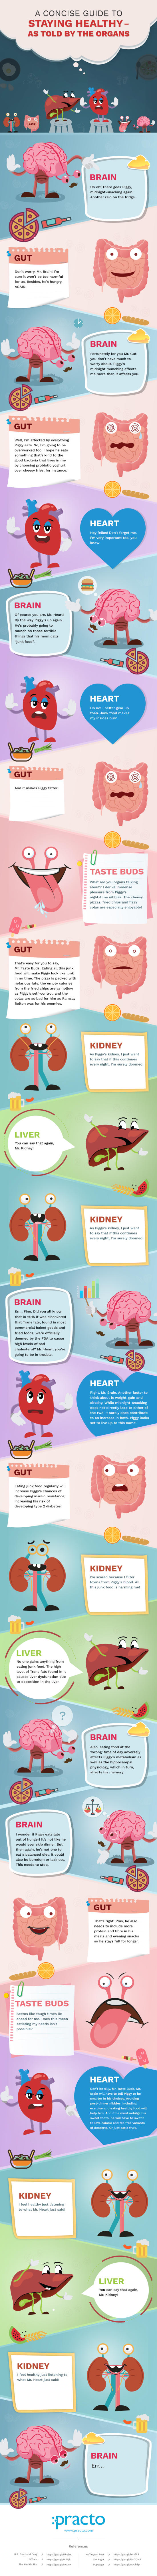 Your Organs Have Something To Say To You - Infographic